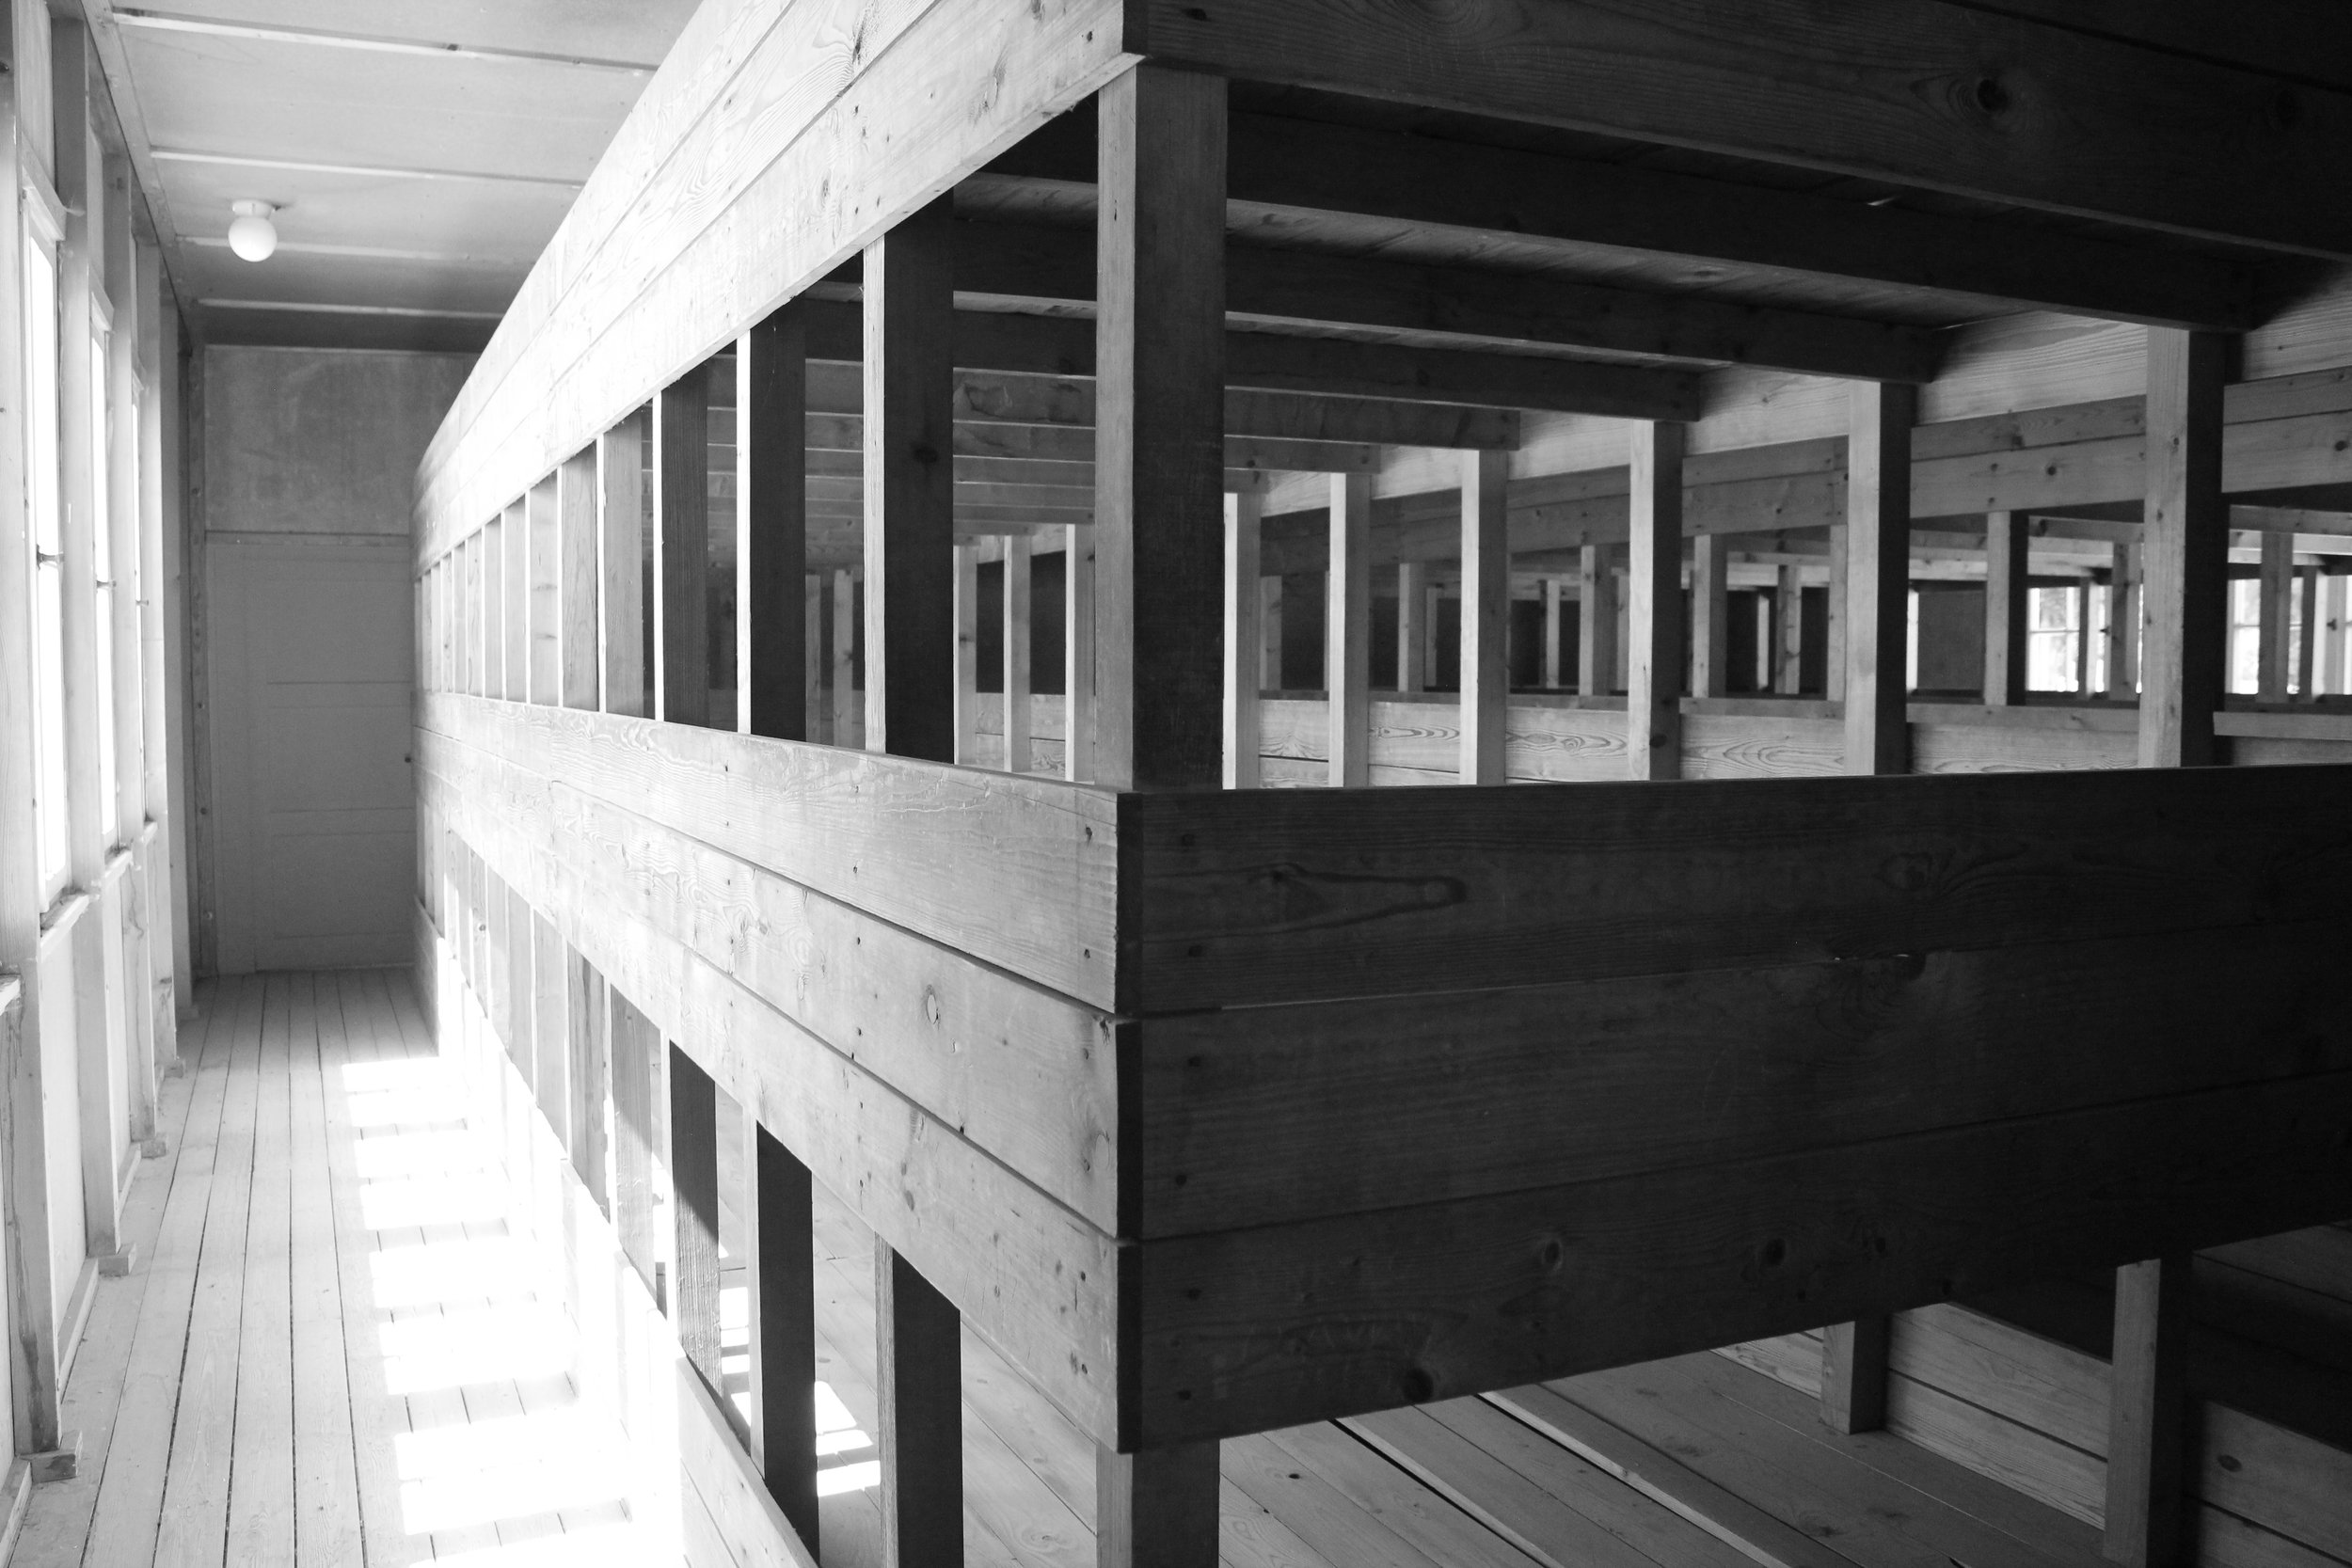 """These beds were for the """"lower class"""" prisoners. Hundreds of people would share these beds, they would barely get any food so they would get weak and they couldn't climb to the upper beds, they would pile onto the bottom bunk or just sleep on the floor."""